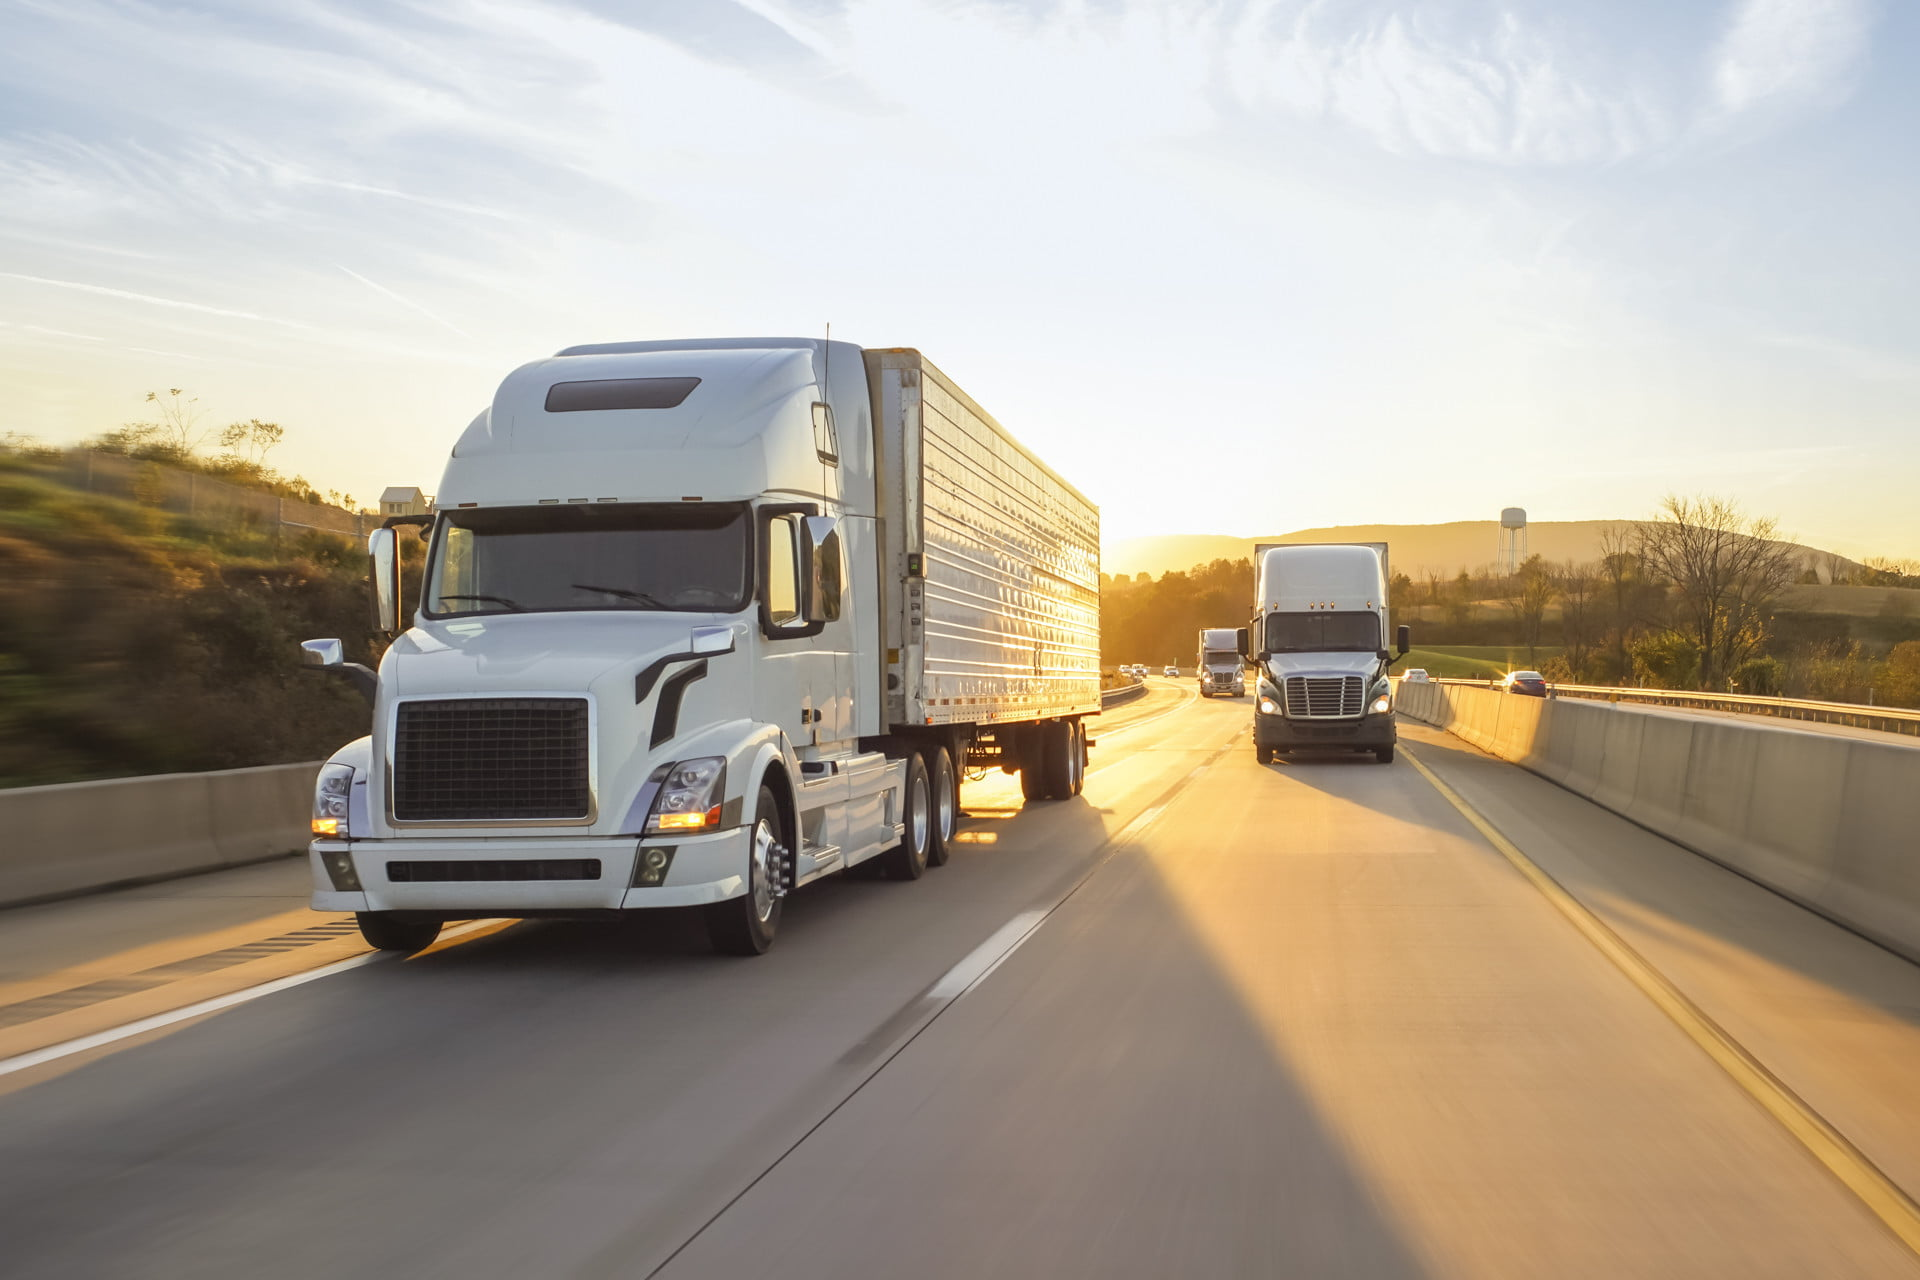 Lidar Technology Is Working To Enhance Trucking Safety